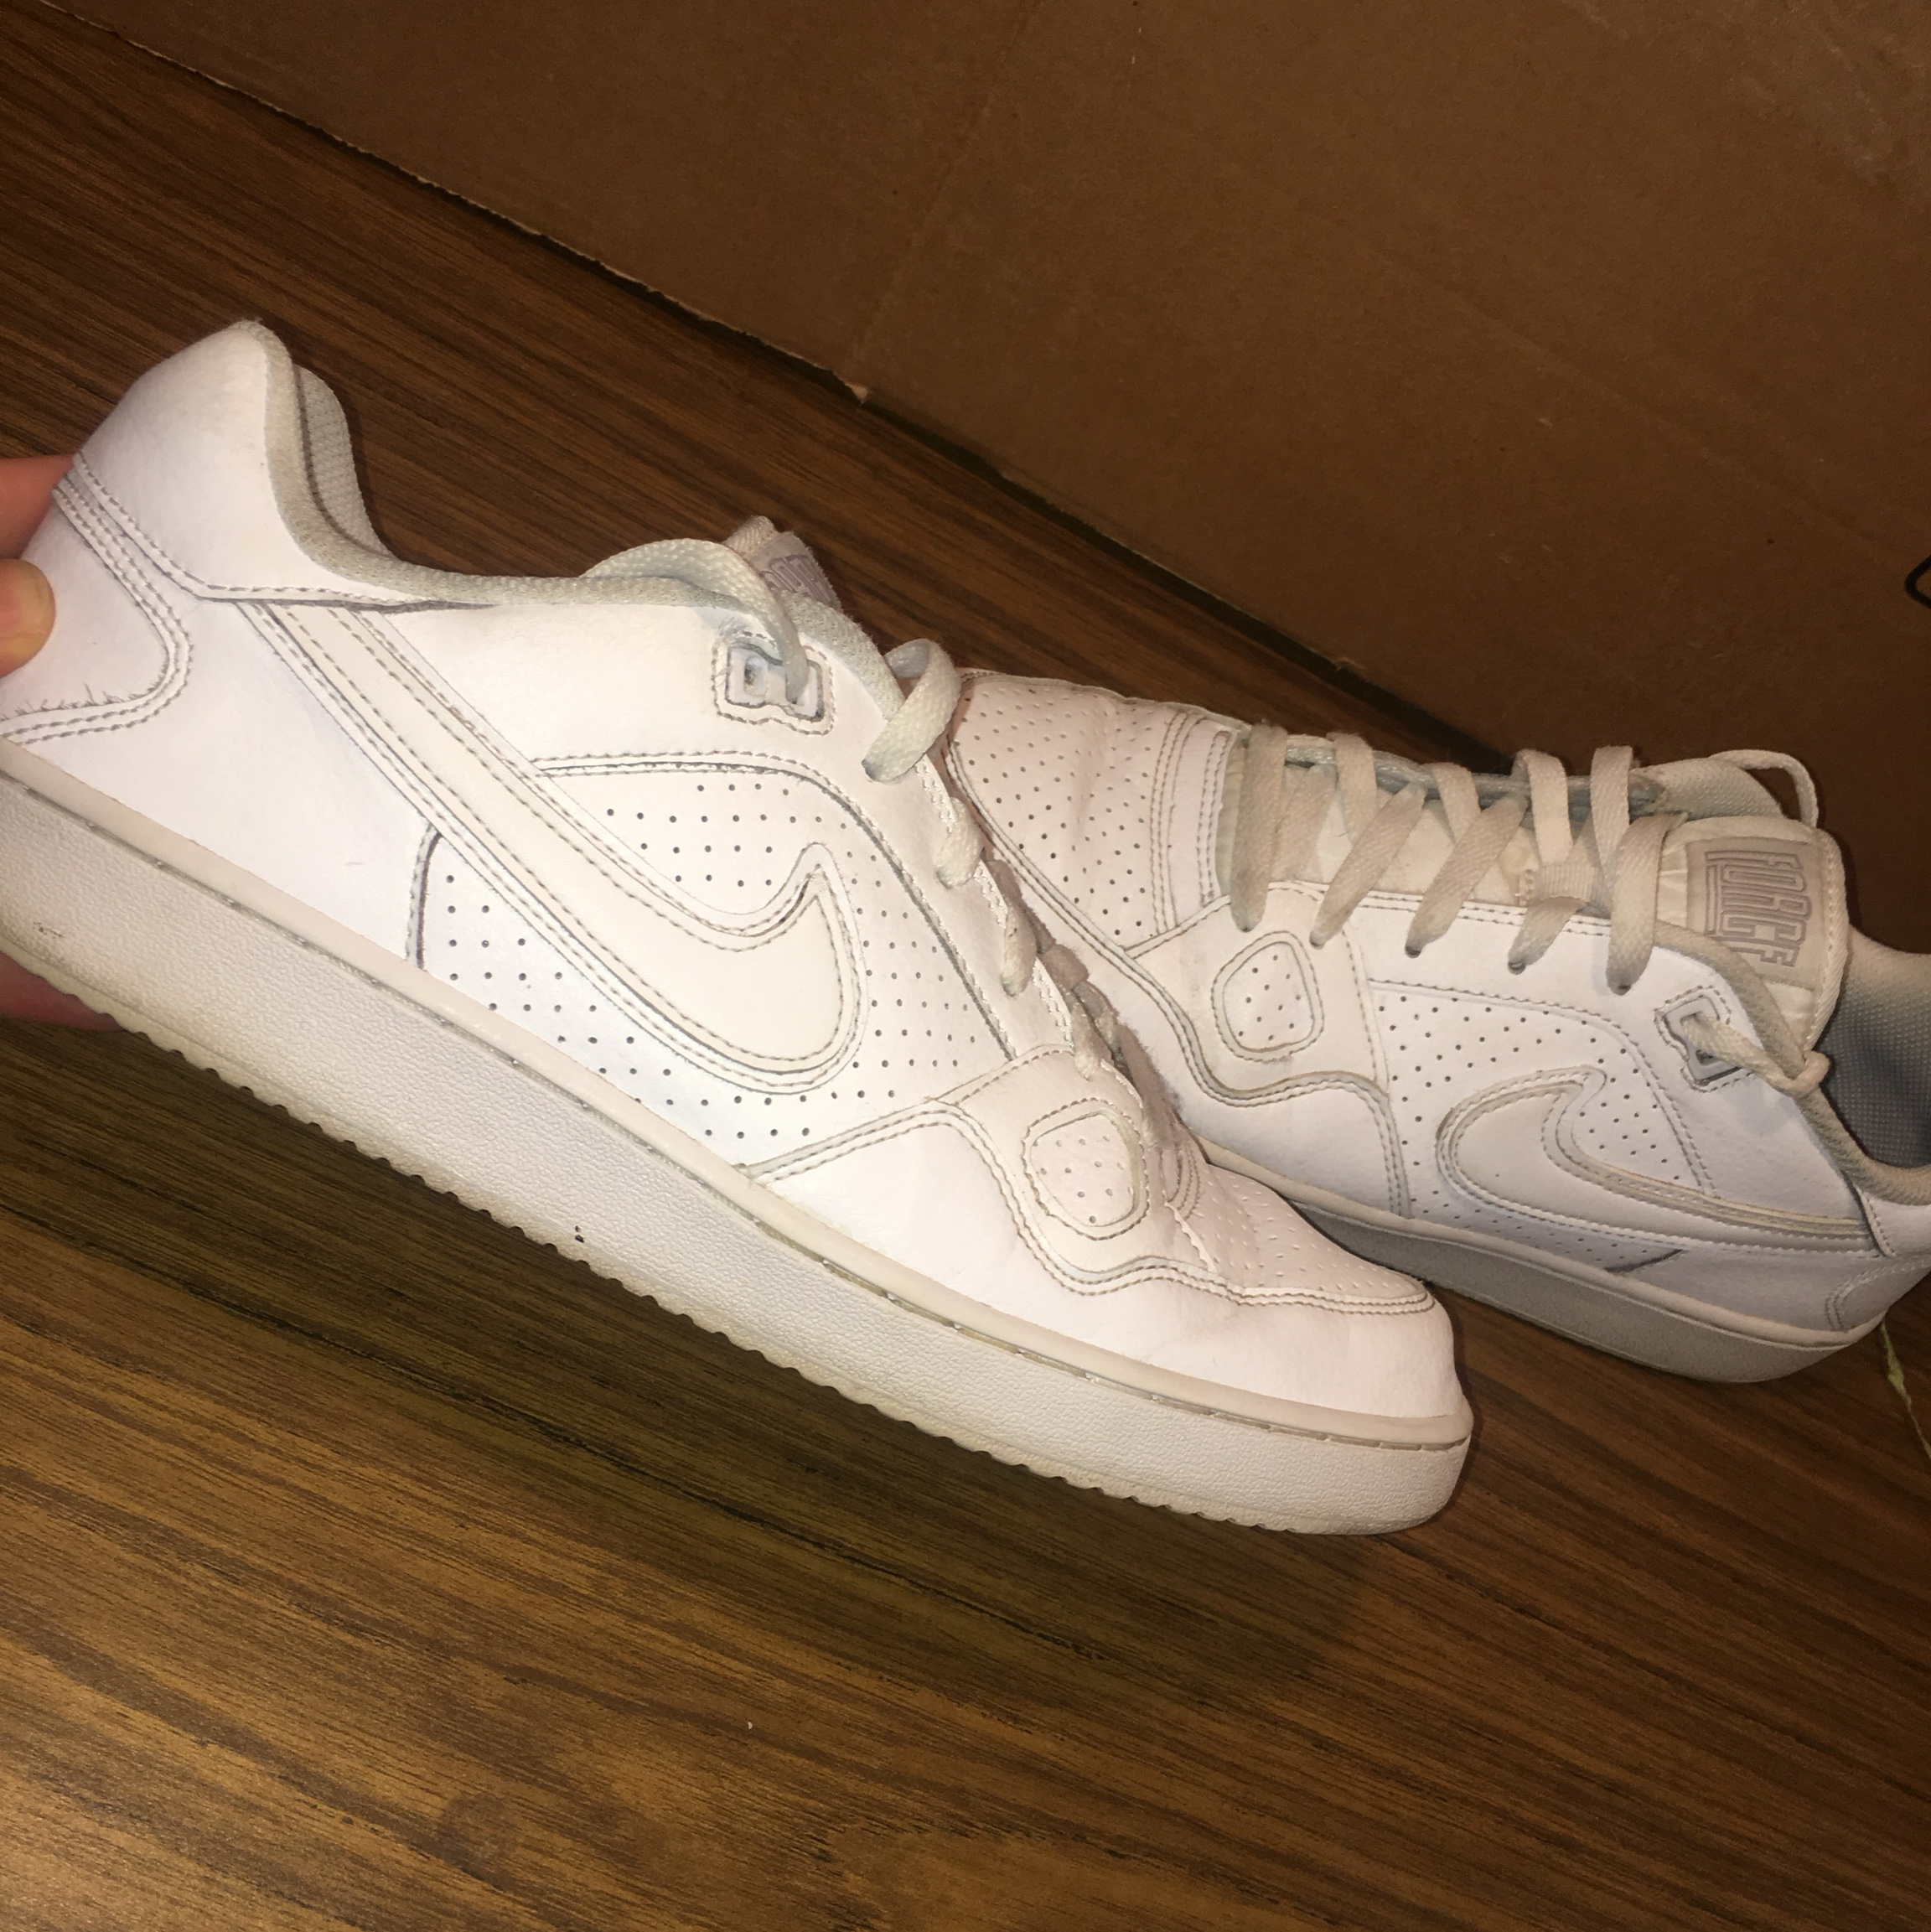 designer fashion 140ef 8ccd5 Nike Low AF1s All White w/laces Condition as shown... - Depop